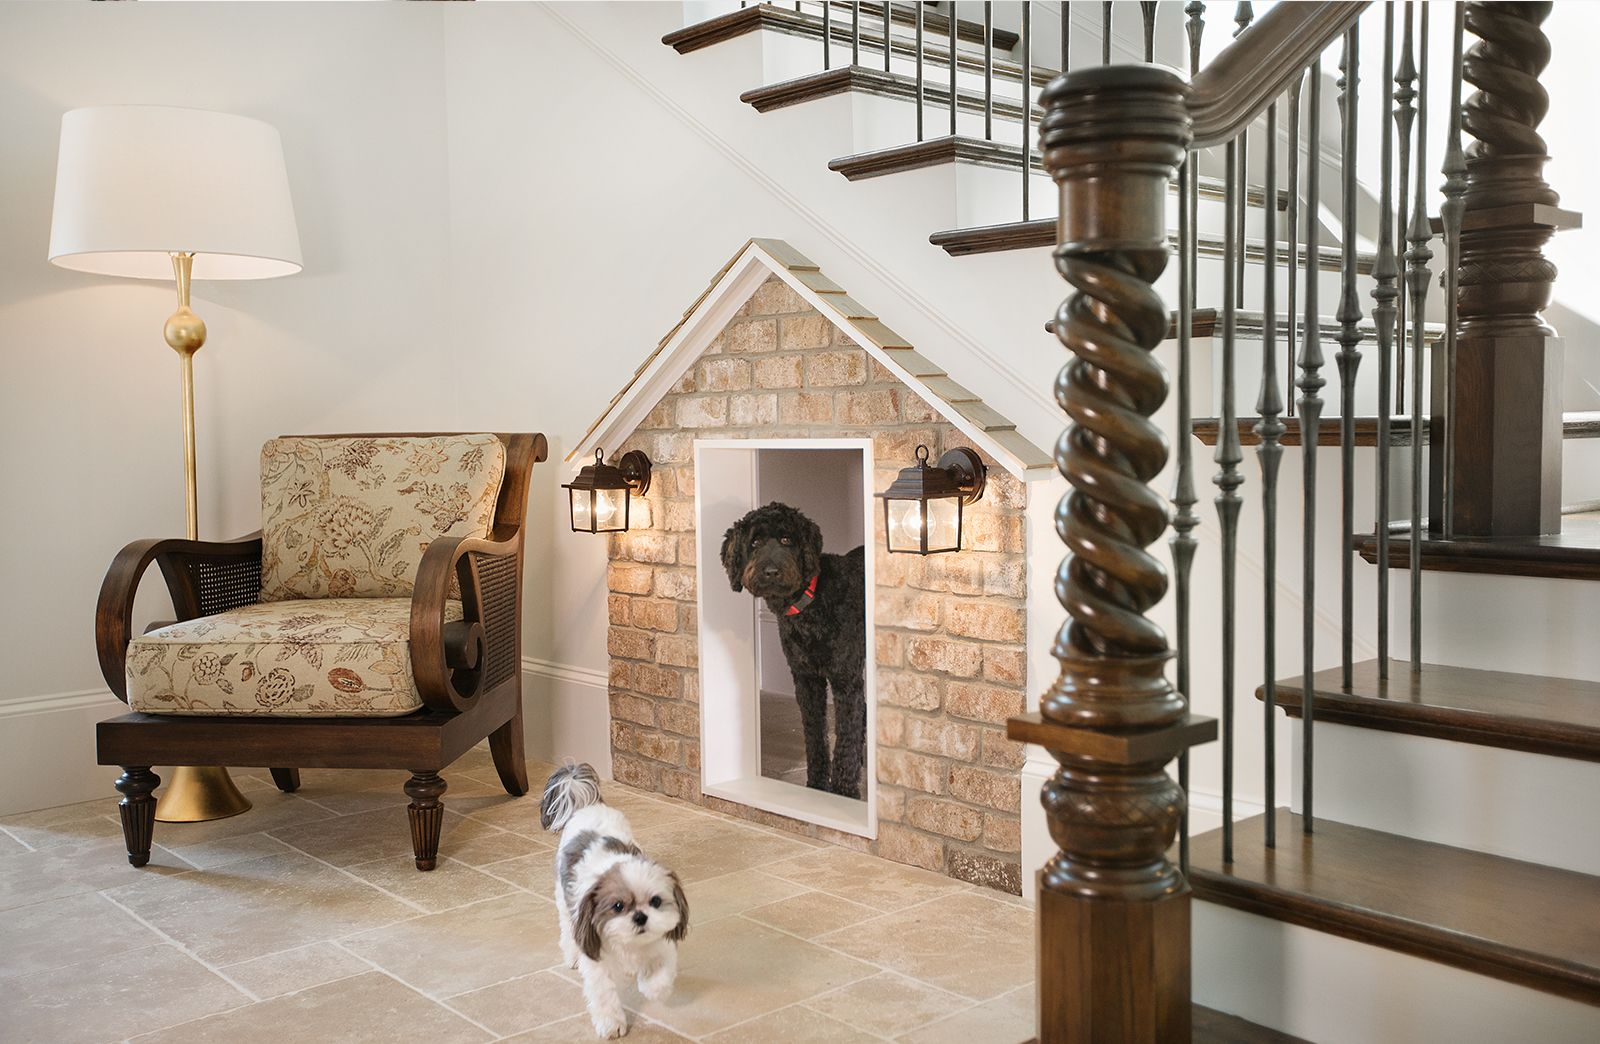 Built In Doghouse Under The Stairs Under Stairs Dog House Dog